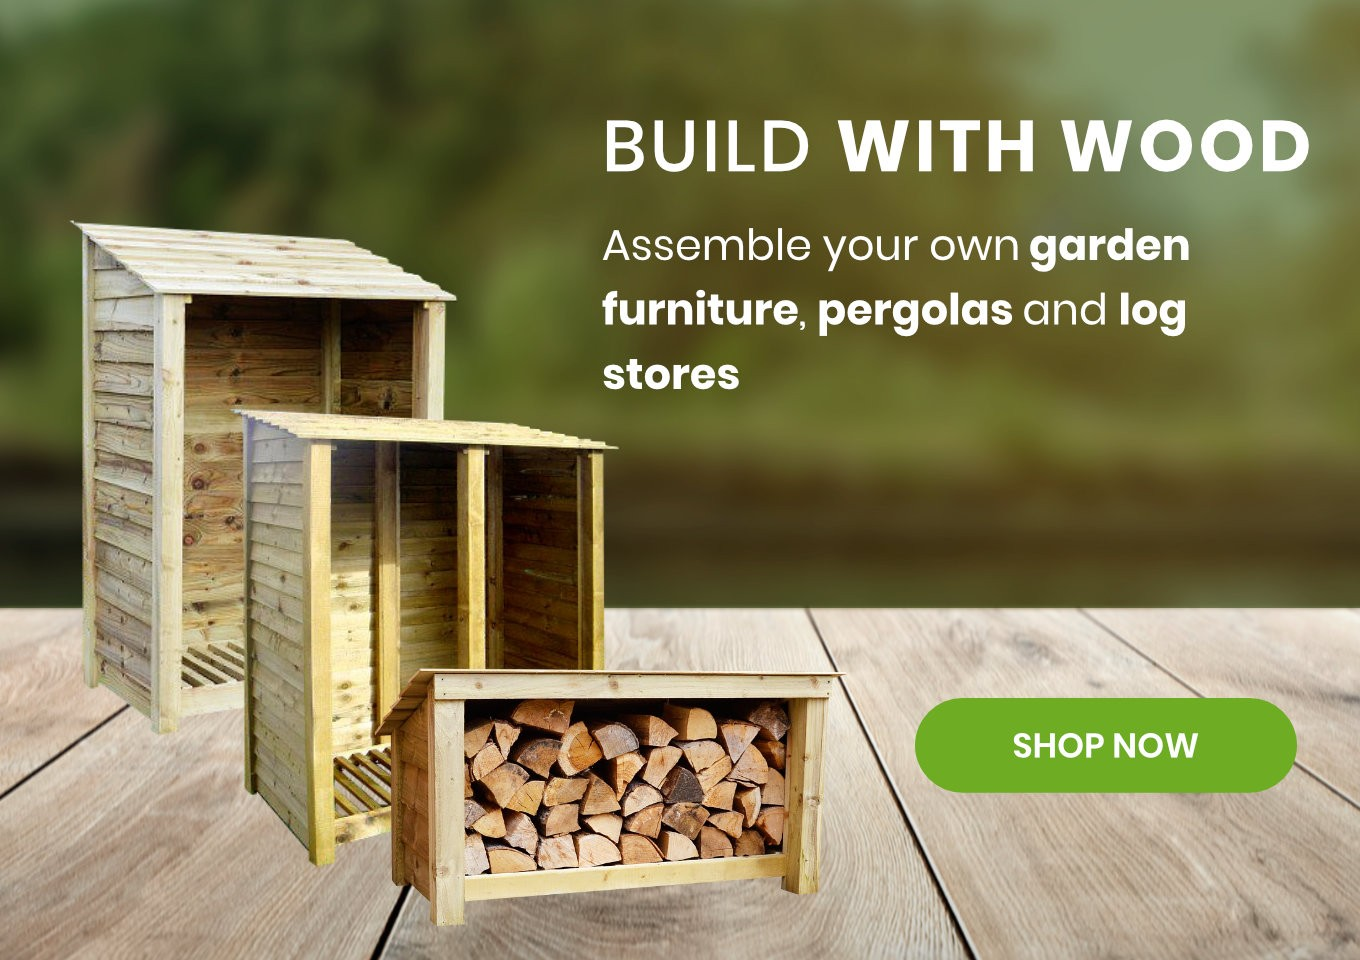 Build with Wood - Pergolas, Log Stores, Picnic sets and more